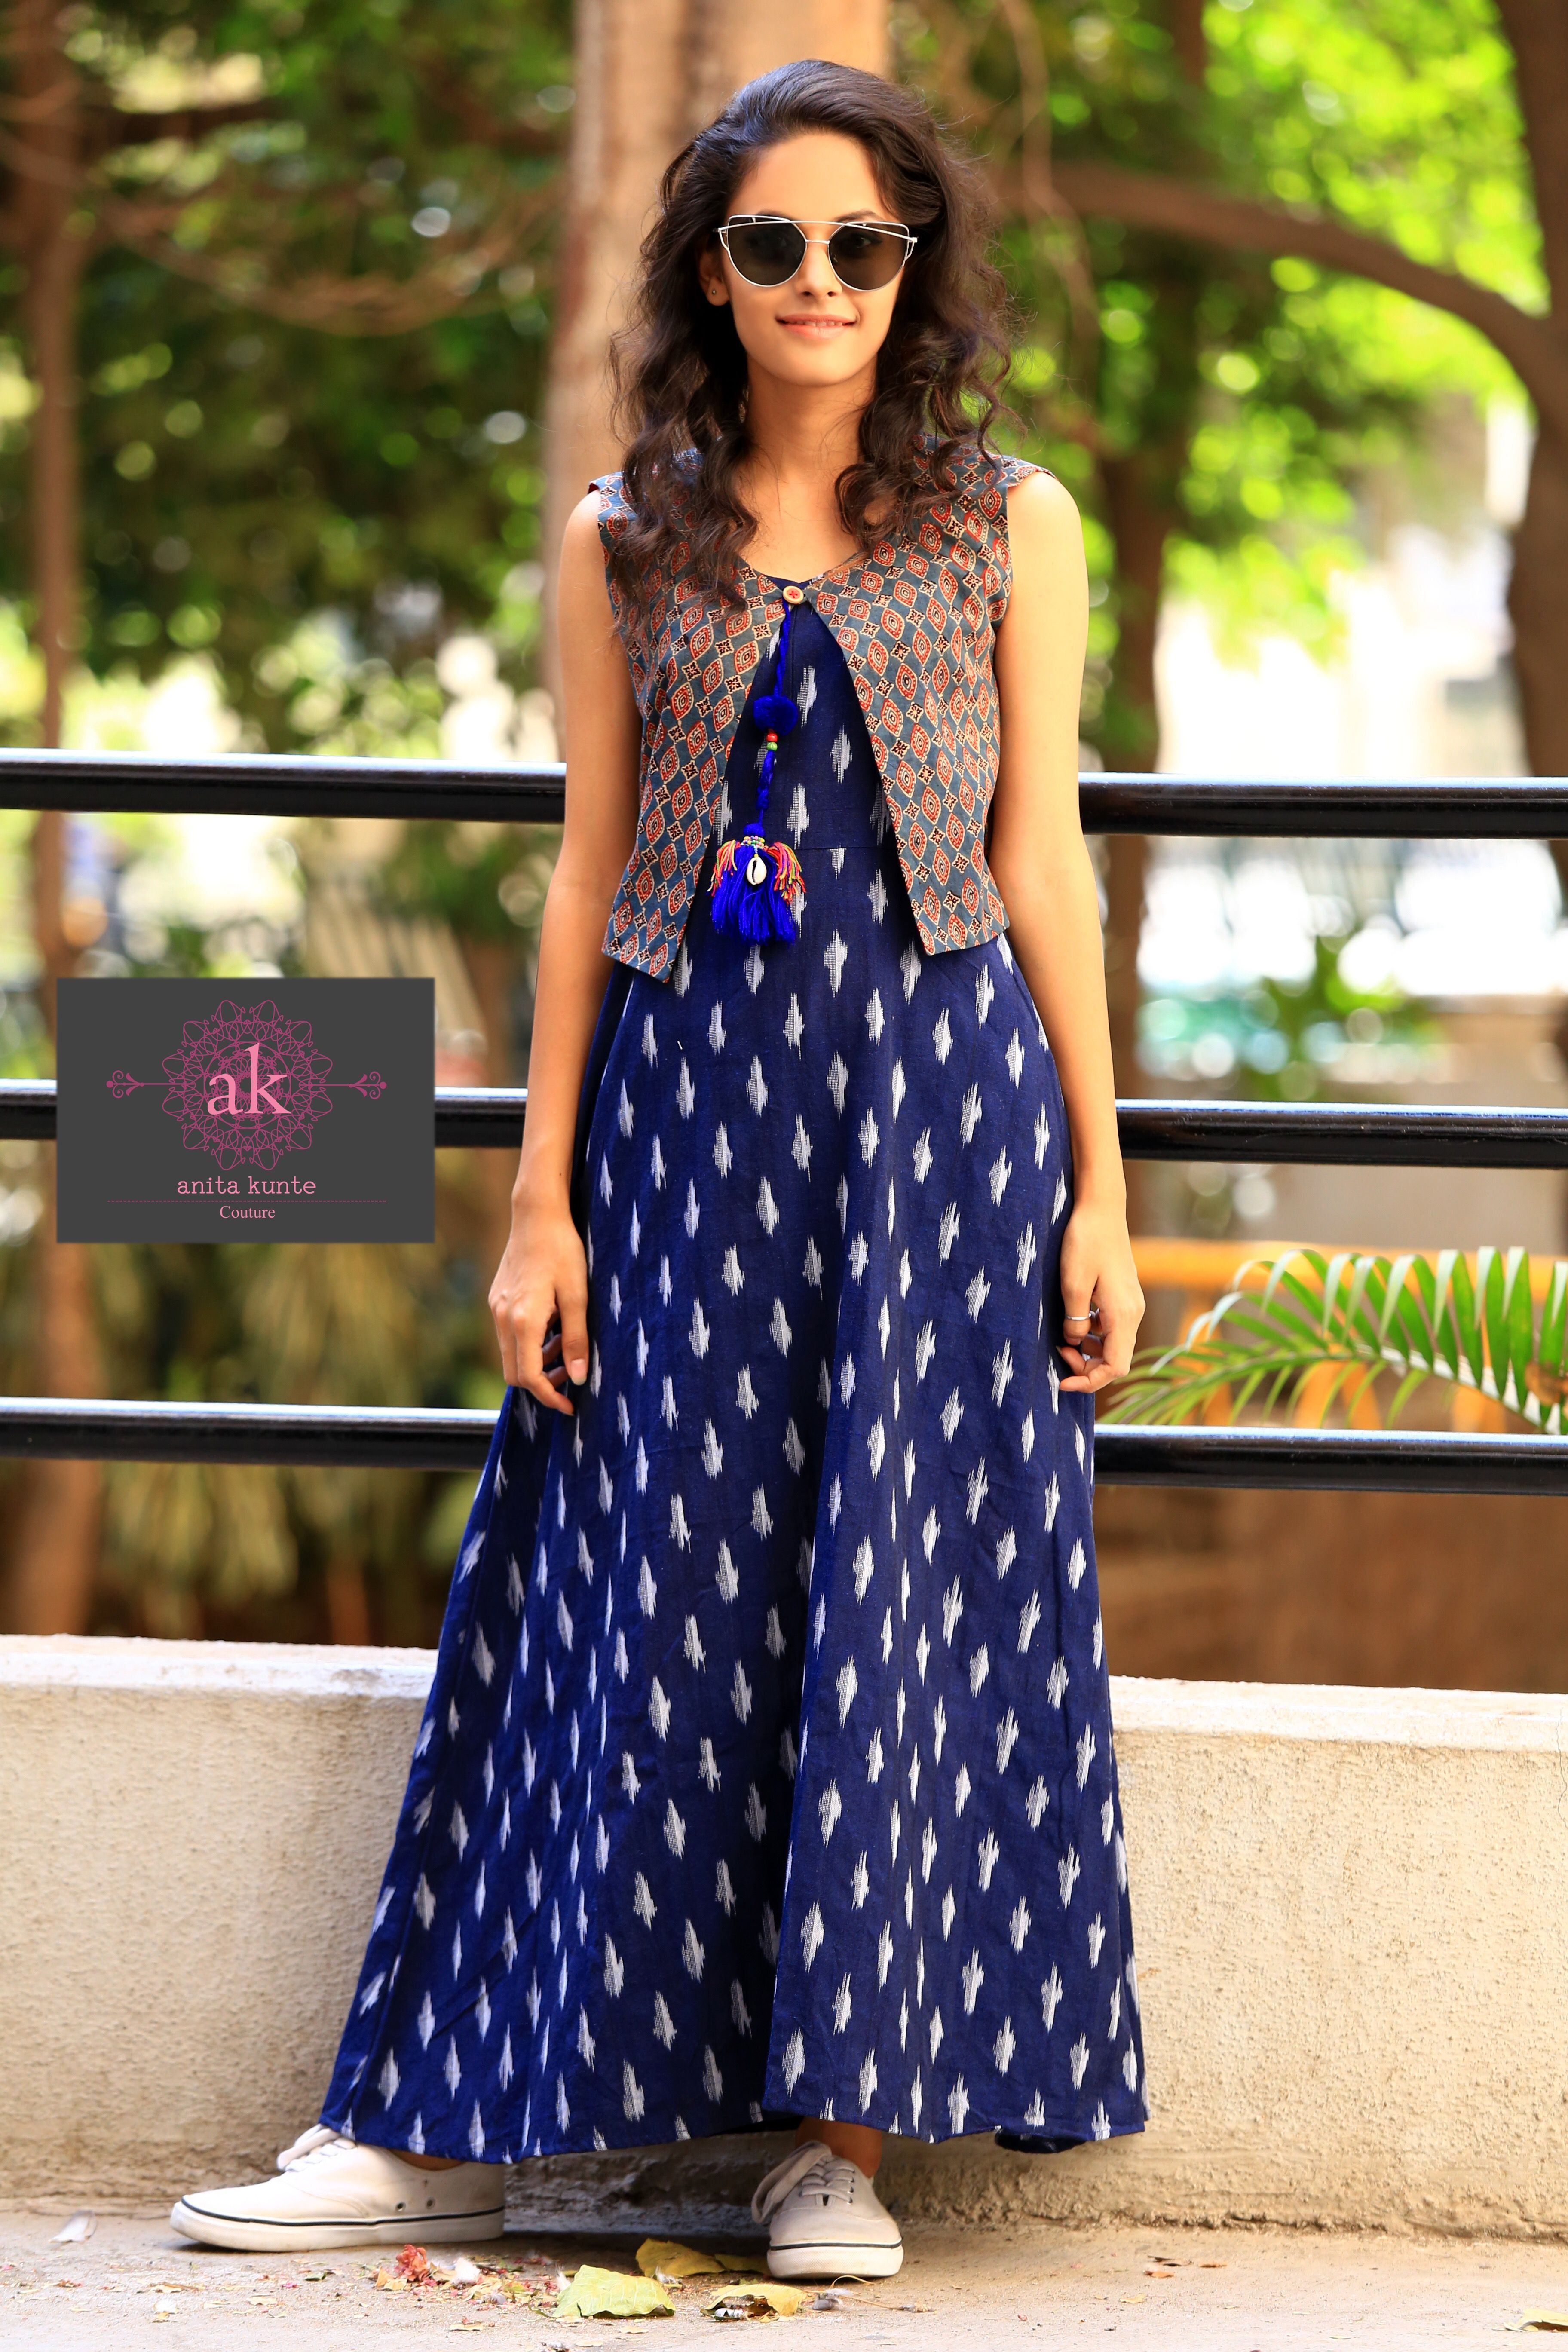 A Nice And Elegant Look Is Here To Spice Up Your